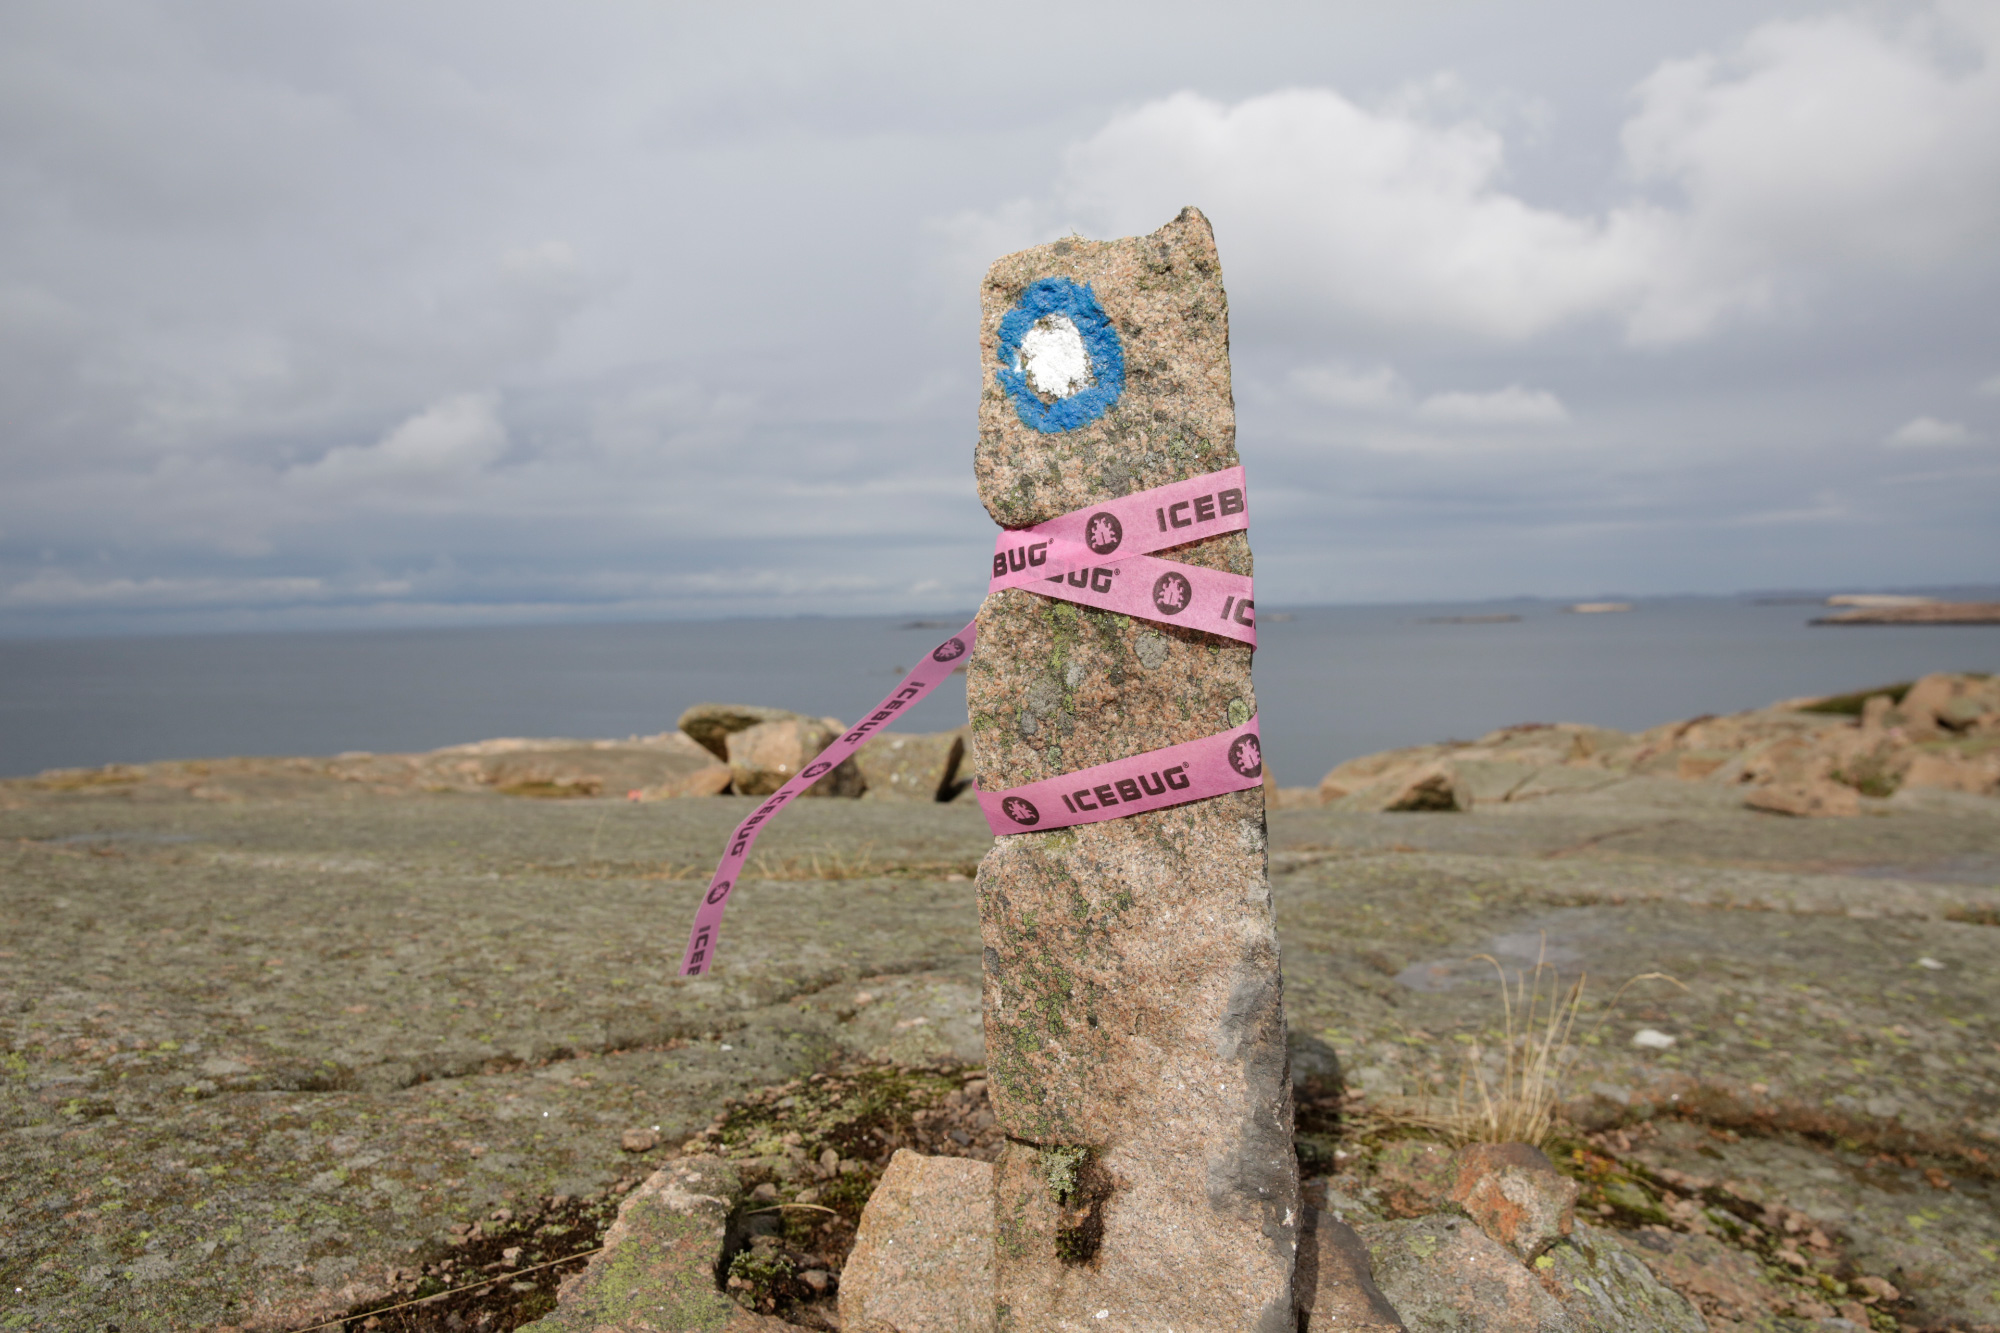 A upright rock marker set in the ground with pink tape around it and a blue circle filled with white marked on it on the Icebug Xperience marathon